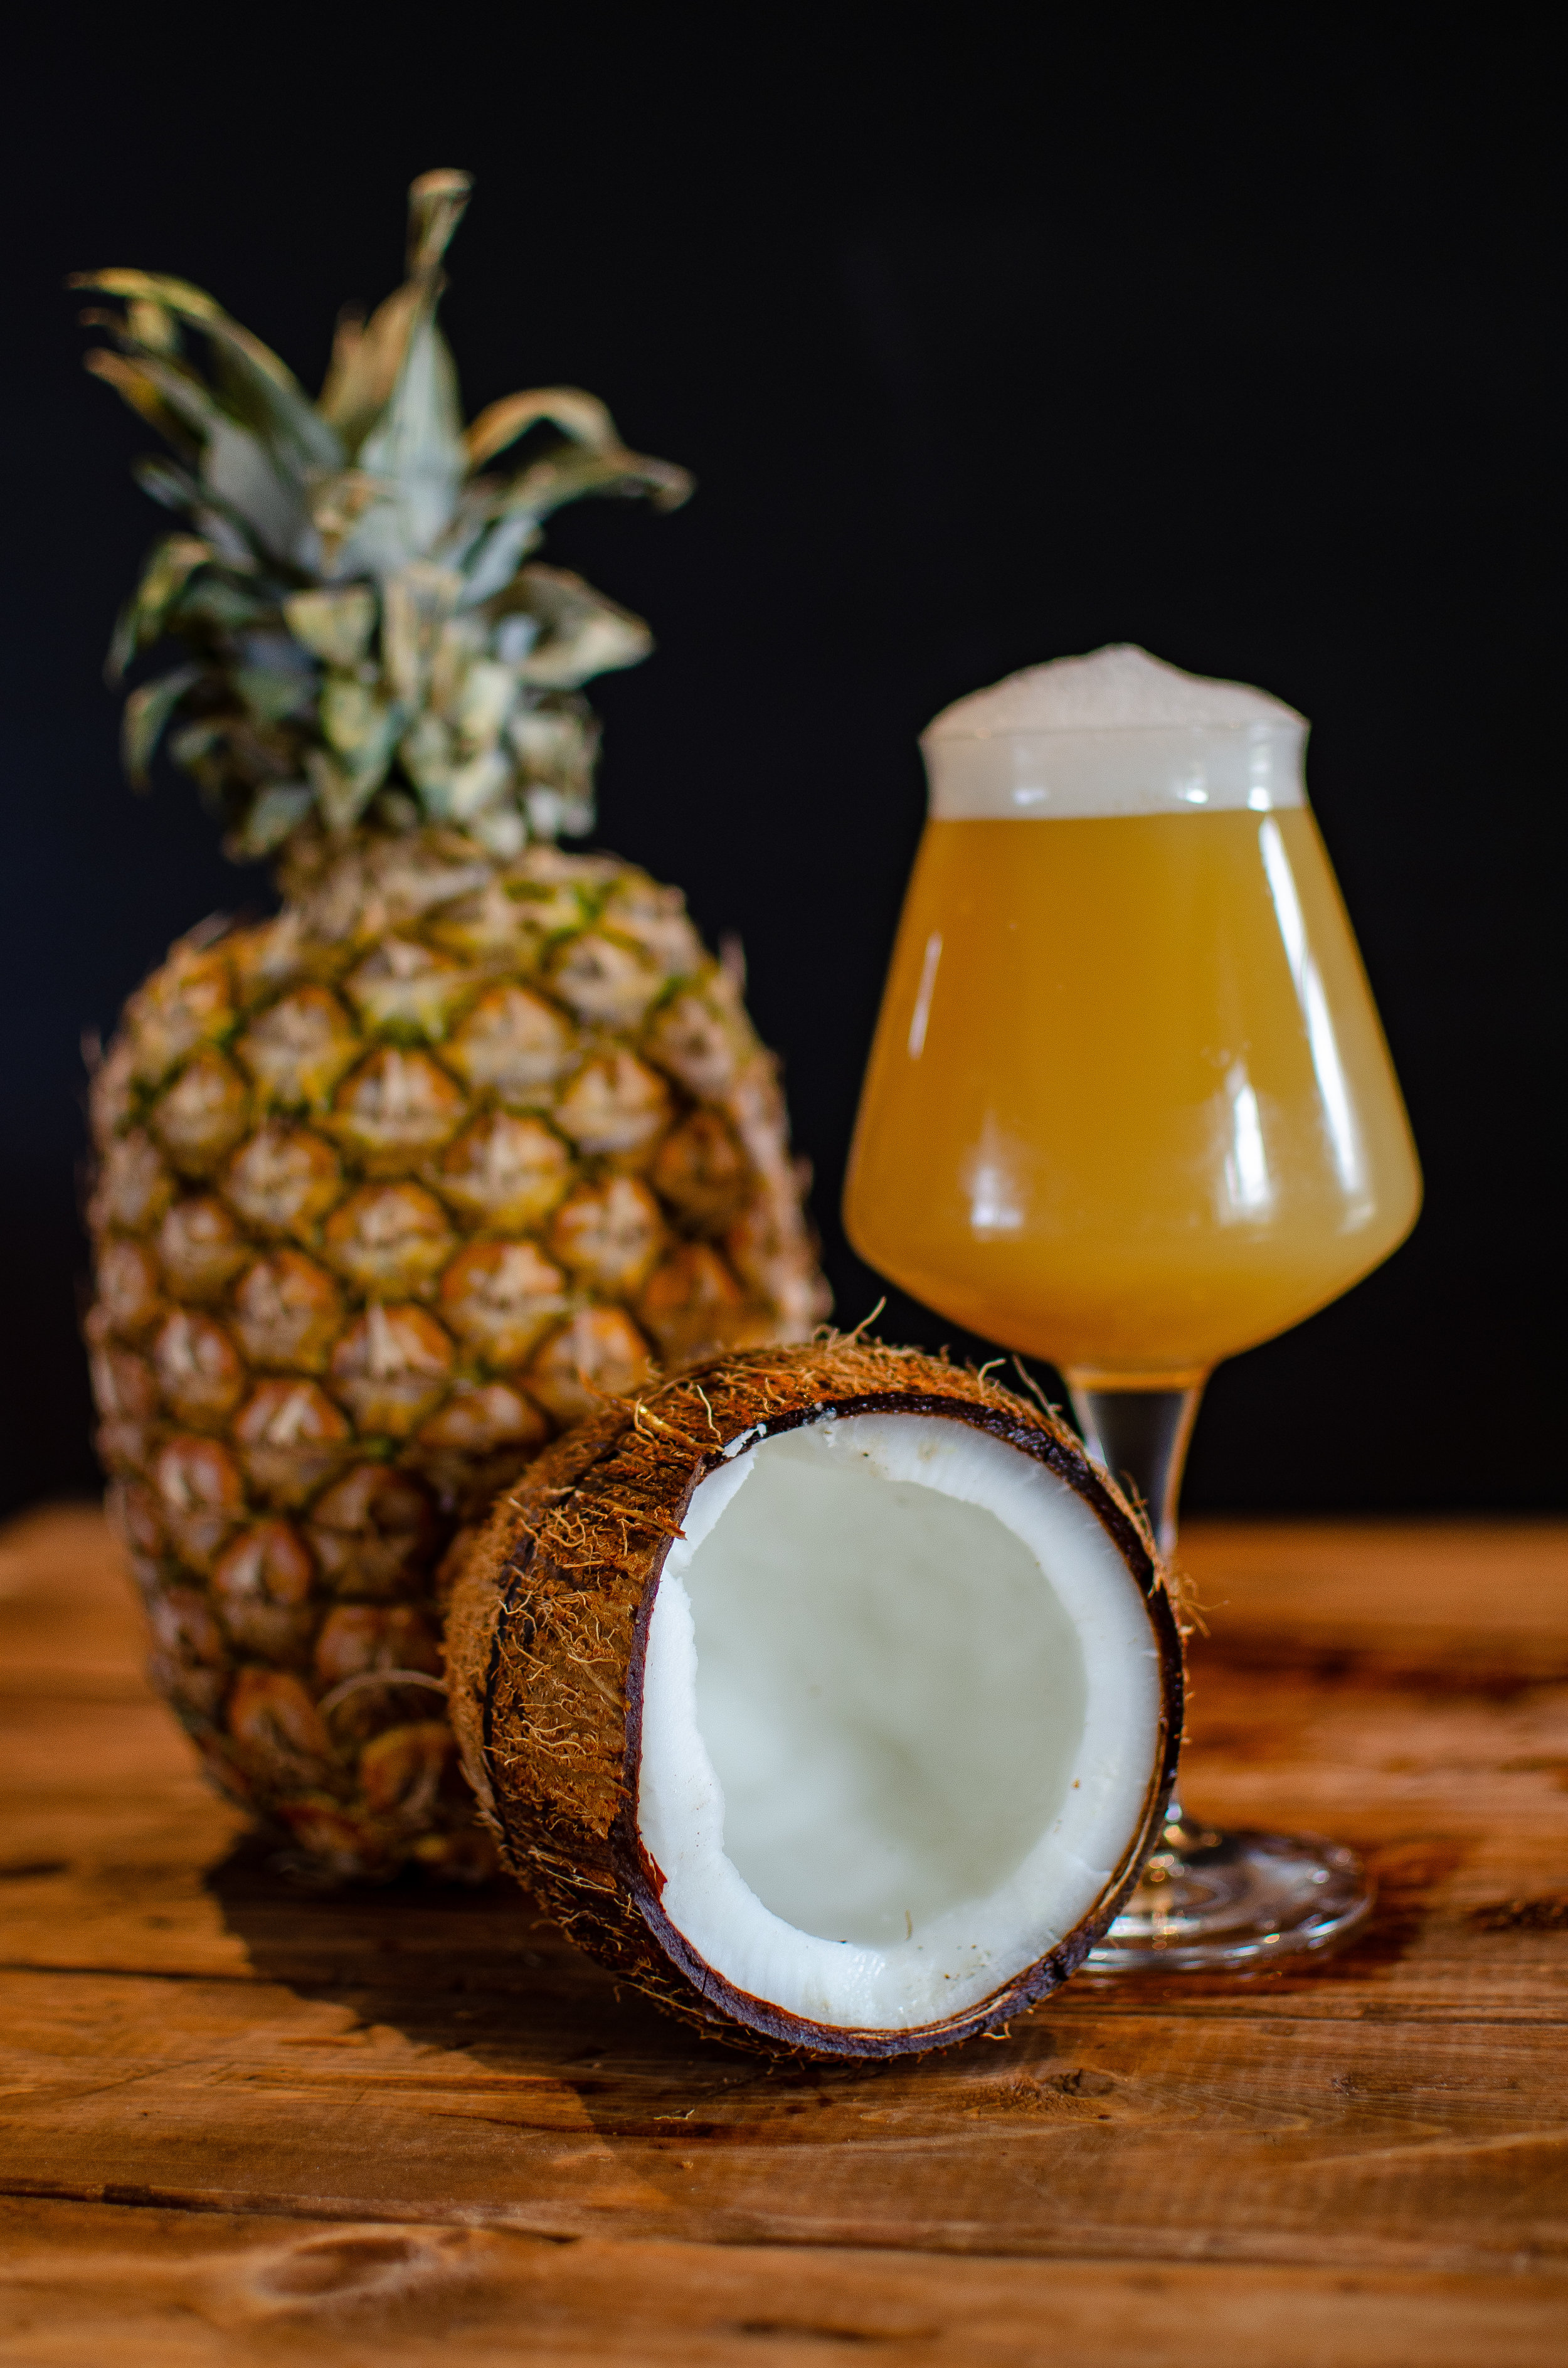 Aloha Summer, Session IPA - A session IPA with pineapple, coconut, and milk sugar added to create a Pina Colada inspired beer. Slim and trim at 4% abv. This summer slammer won't leave you caught in the rain or face down in the sand.I was tired of my IPAWe'd been together too longLike a worn out recordingOf our favorite songSo while I lay there drinkingI read the Facebook in bedAnd on the Kettlehead pageThere was this post that I read...If you like Pina ColadasAnd getting hops off your brainIf you're not into dark beerIf you want a new strainIf you like drinking till midnight and pounding the beersI'm the love that you've looked forALOHA SUMMER is here ☀️🥥🍍